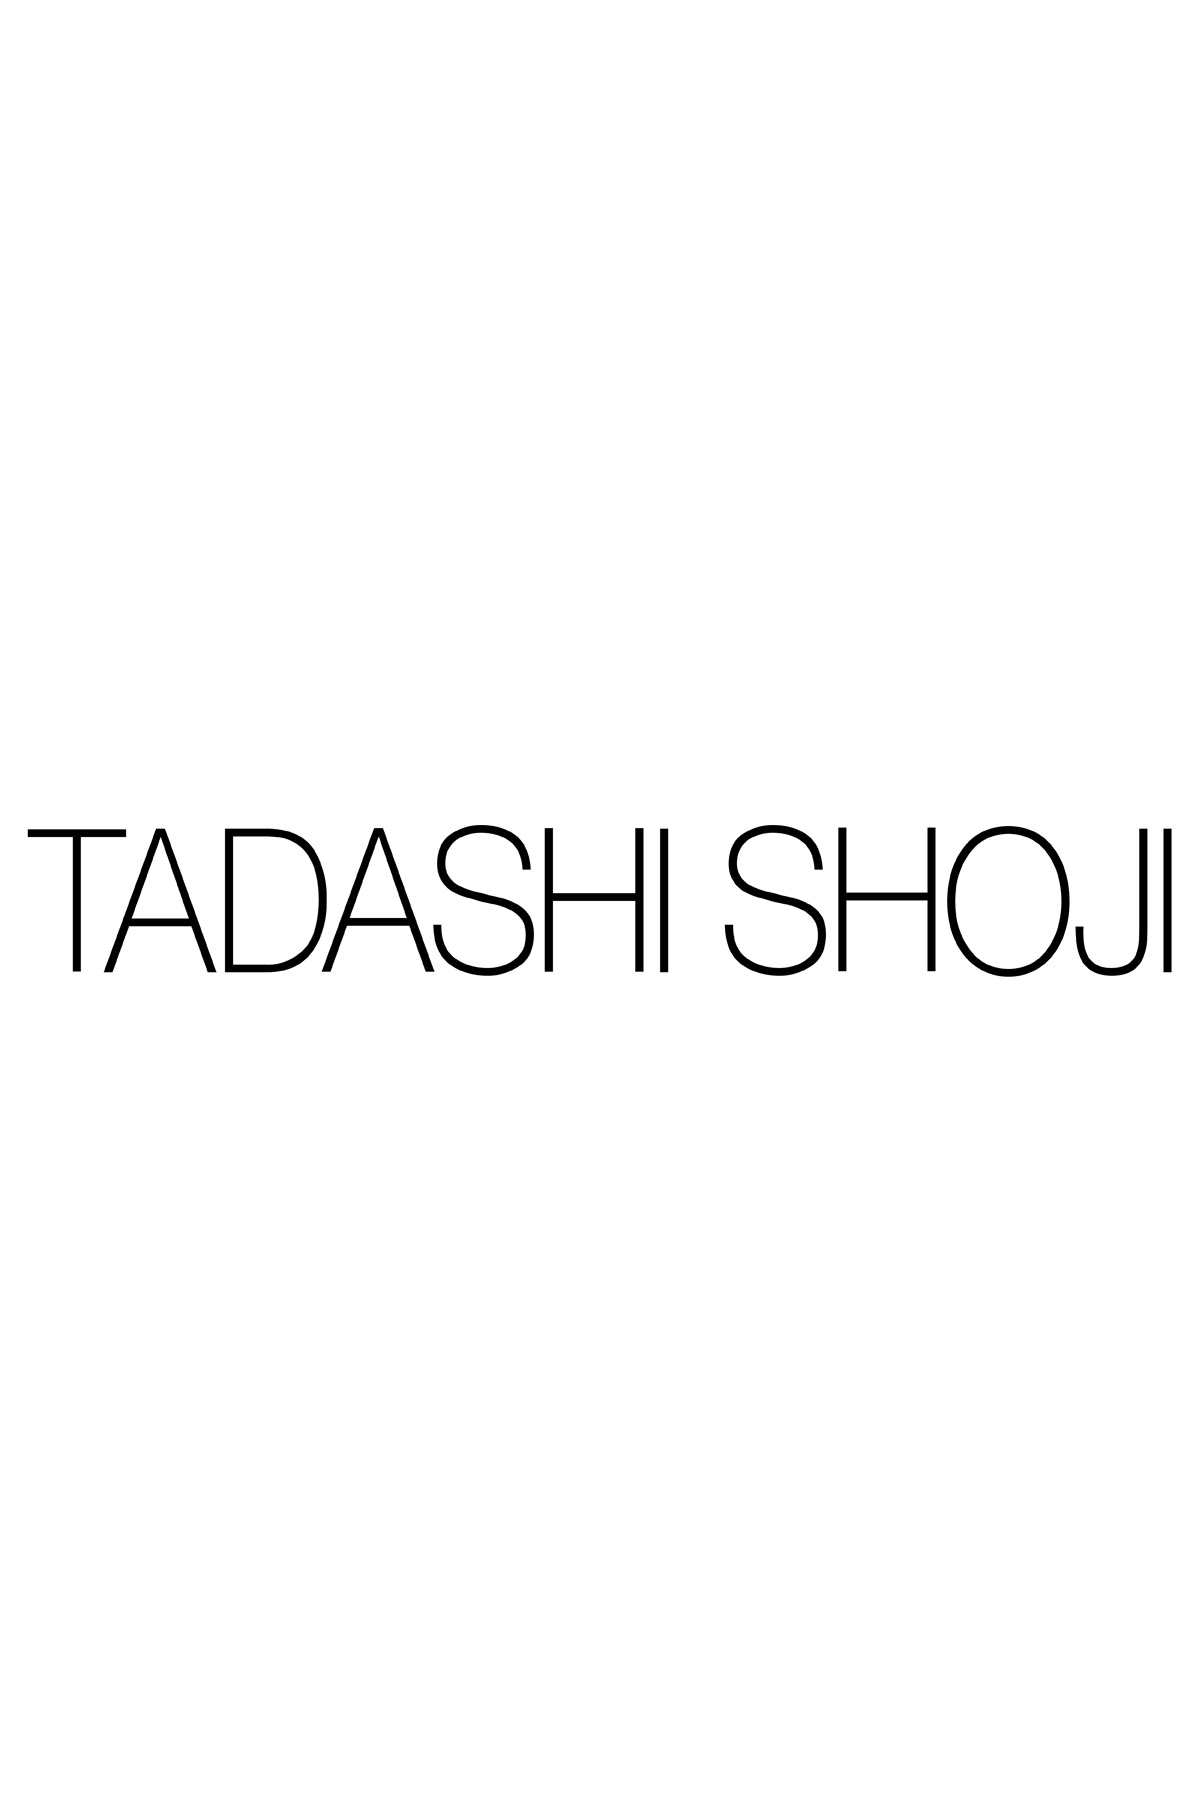 Tadashi Shoji - Jasmine Floral Embroidered Sleeveless Dress